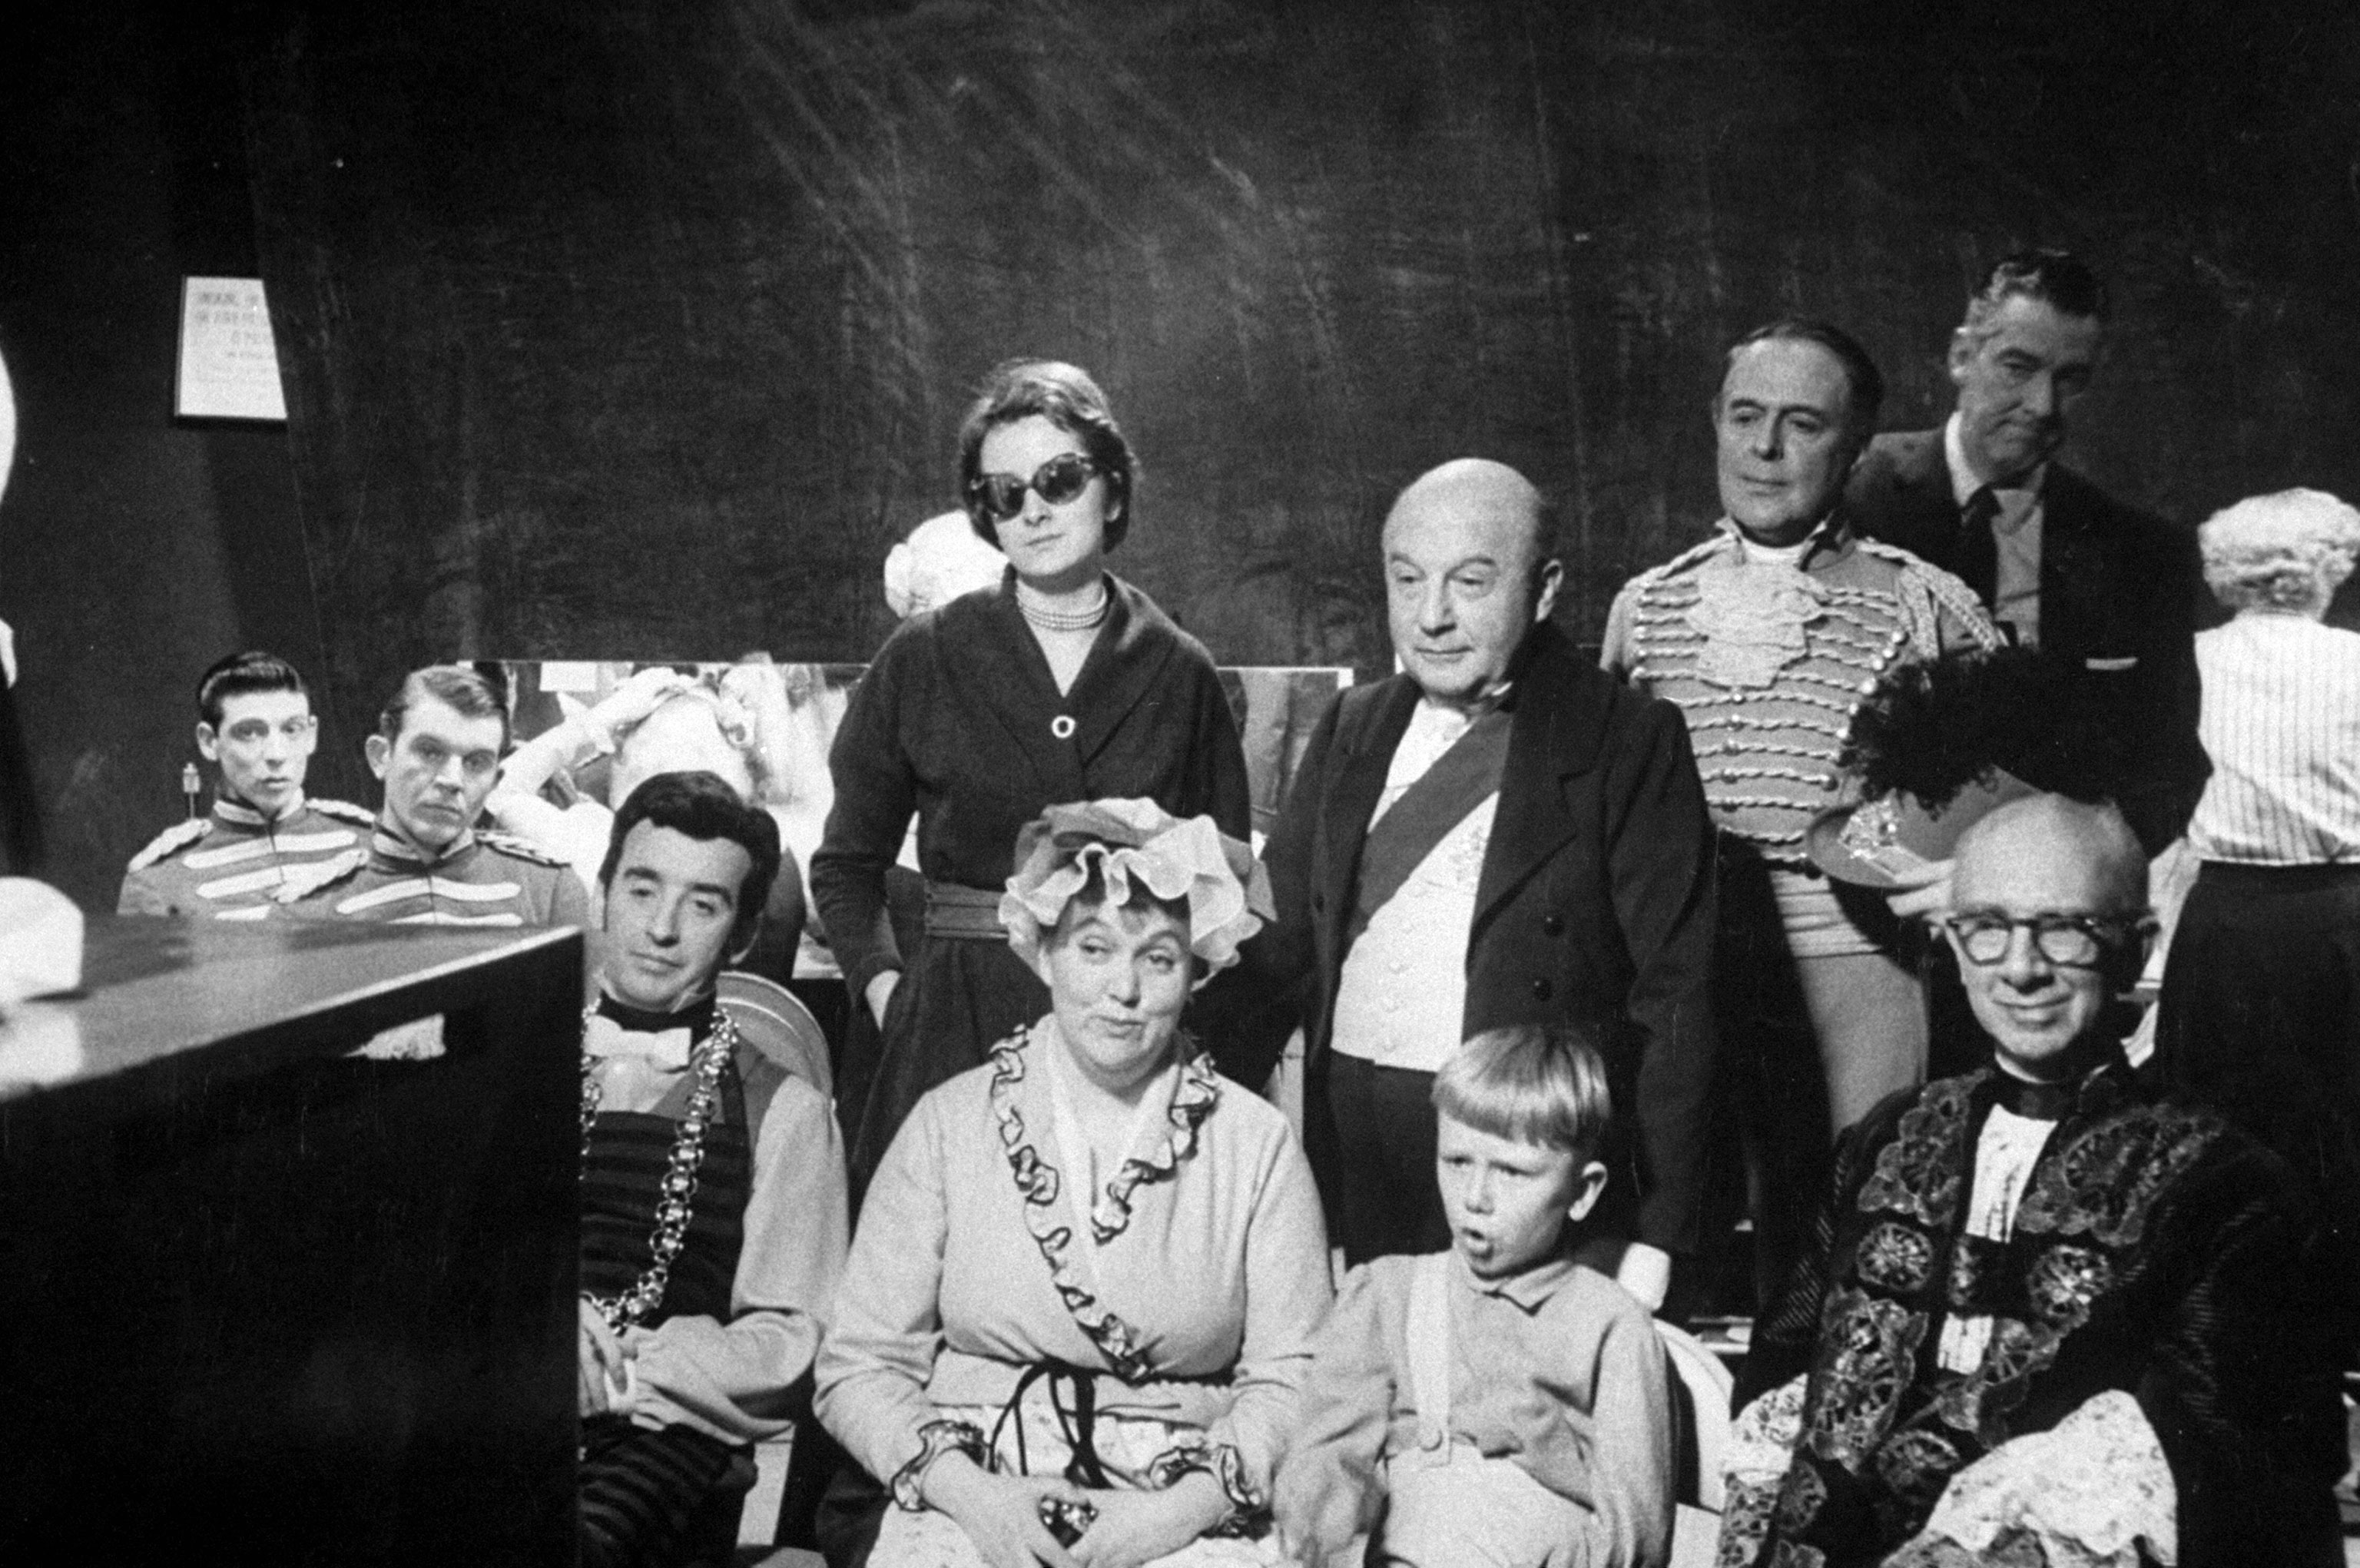 <b>Caption from LIFE.</b> Watching the star, members of the cast gather around a monitor television set, some of their faces beaming satisfaction, others still nervous lest something go wrong in the last few moments of the show. They are listening to Julie Andrews sing <i>A Lovely Night,</i> a musical recapitulation of the royal ball.